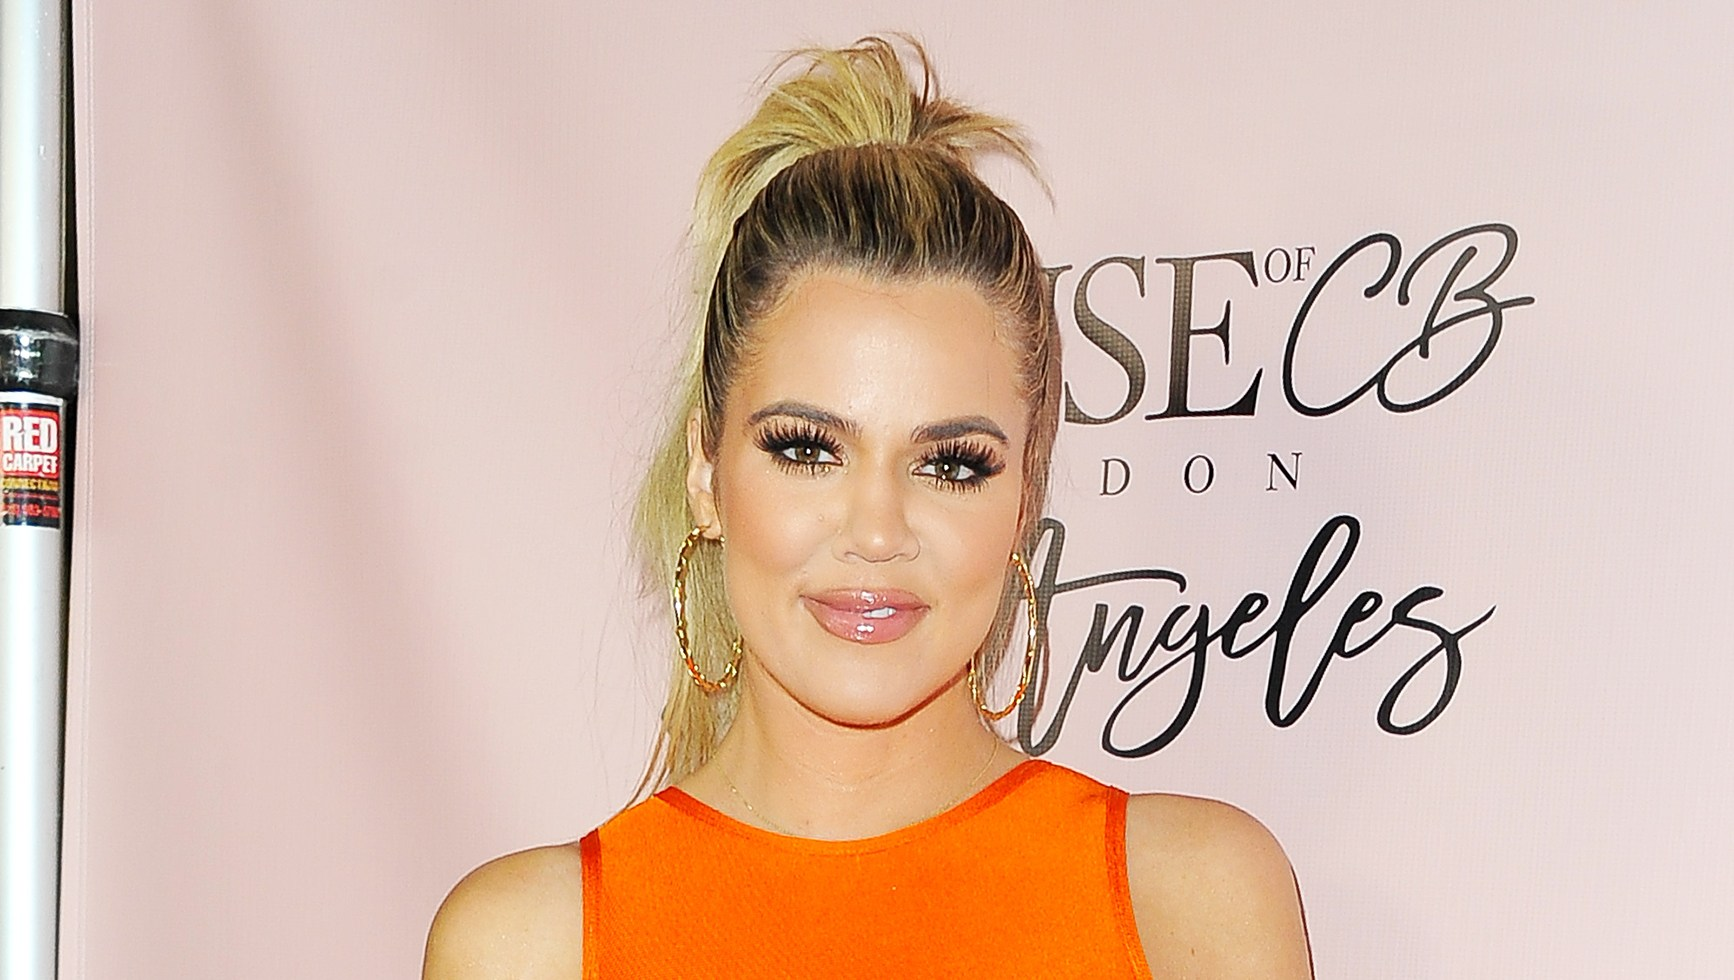 Khloe Kardashian Doesnt Know Baby Name